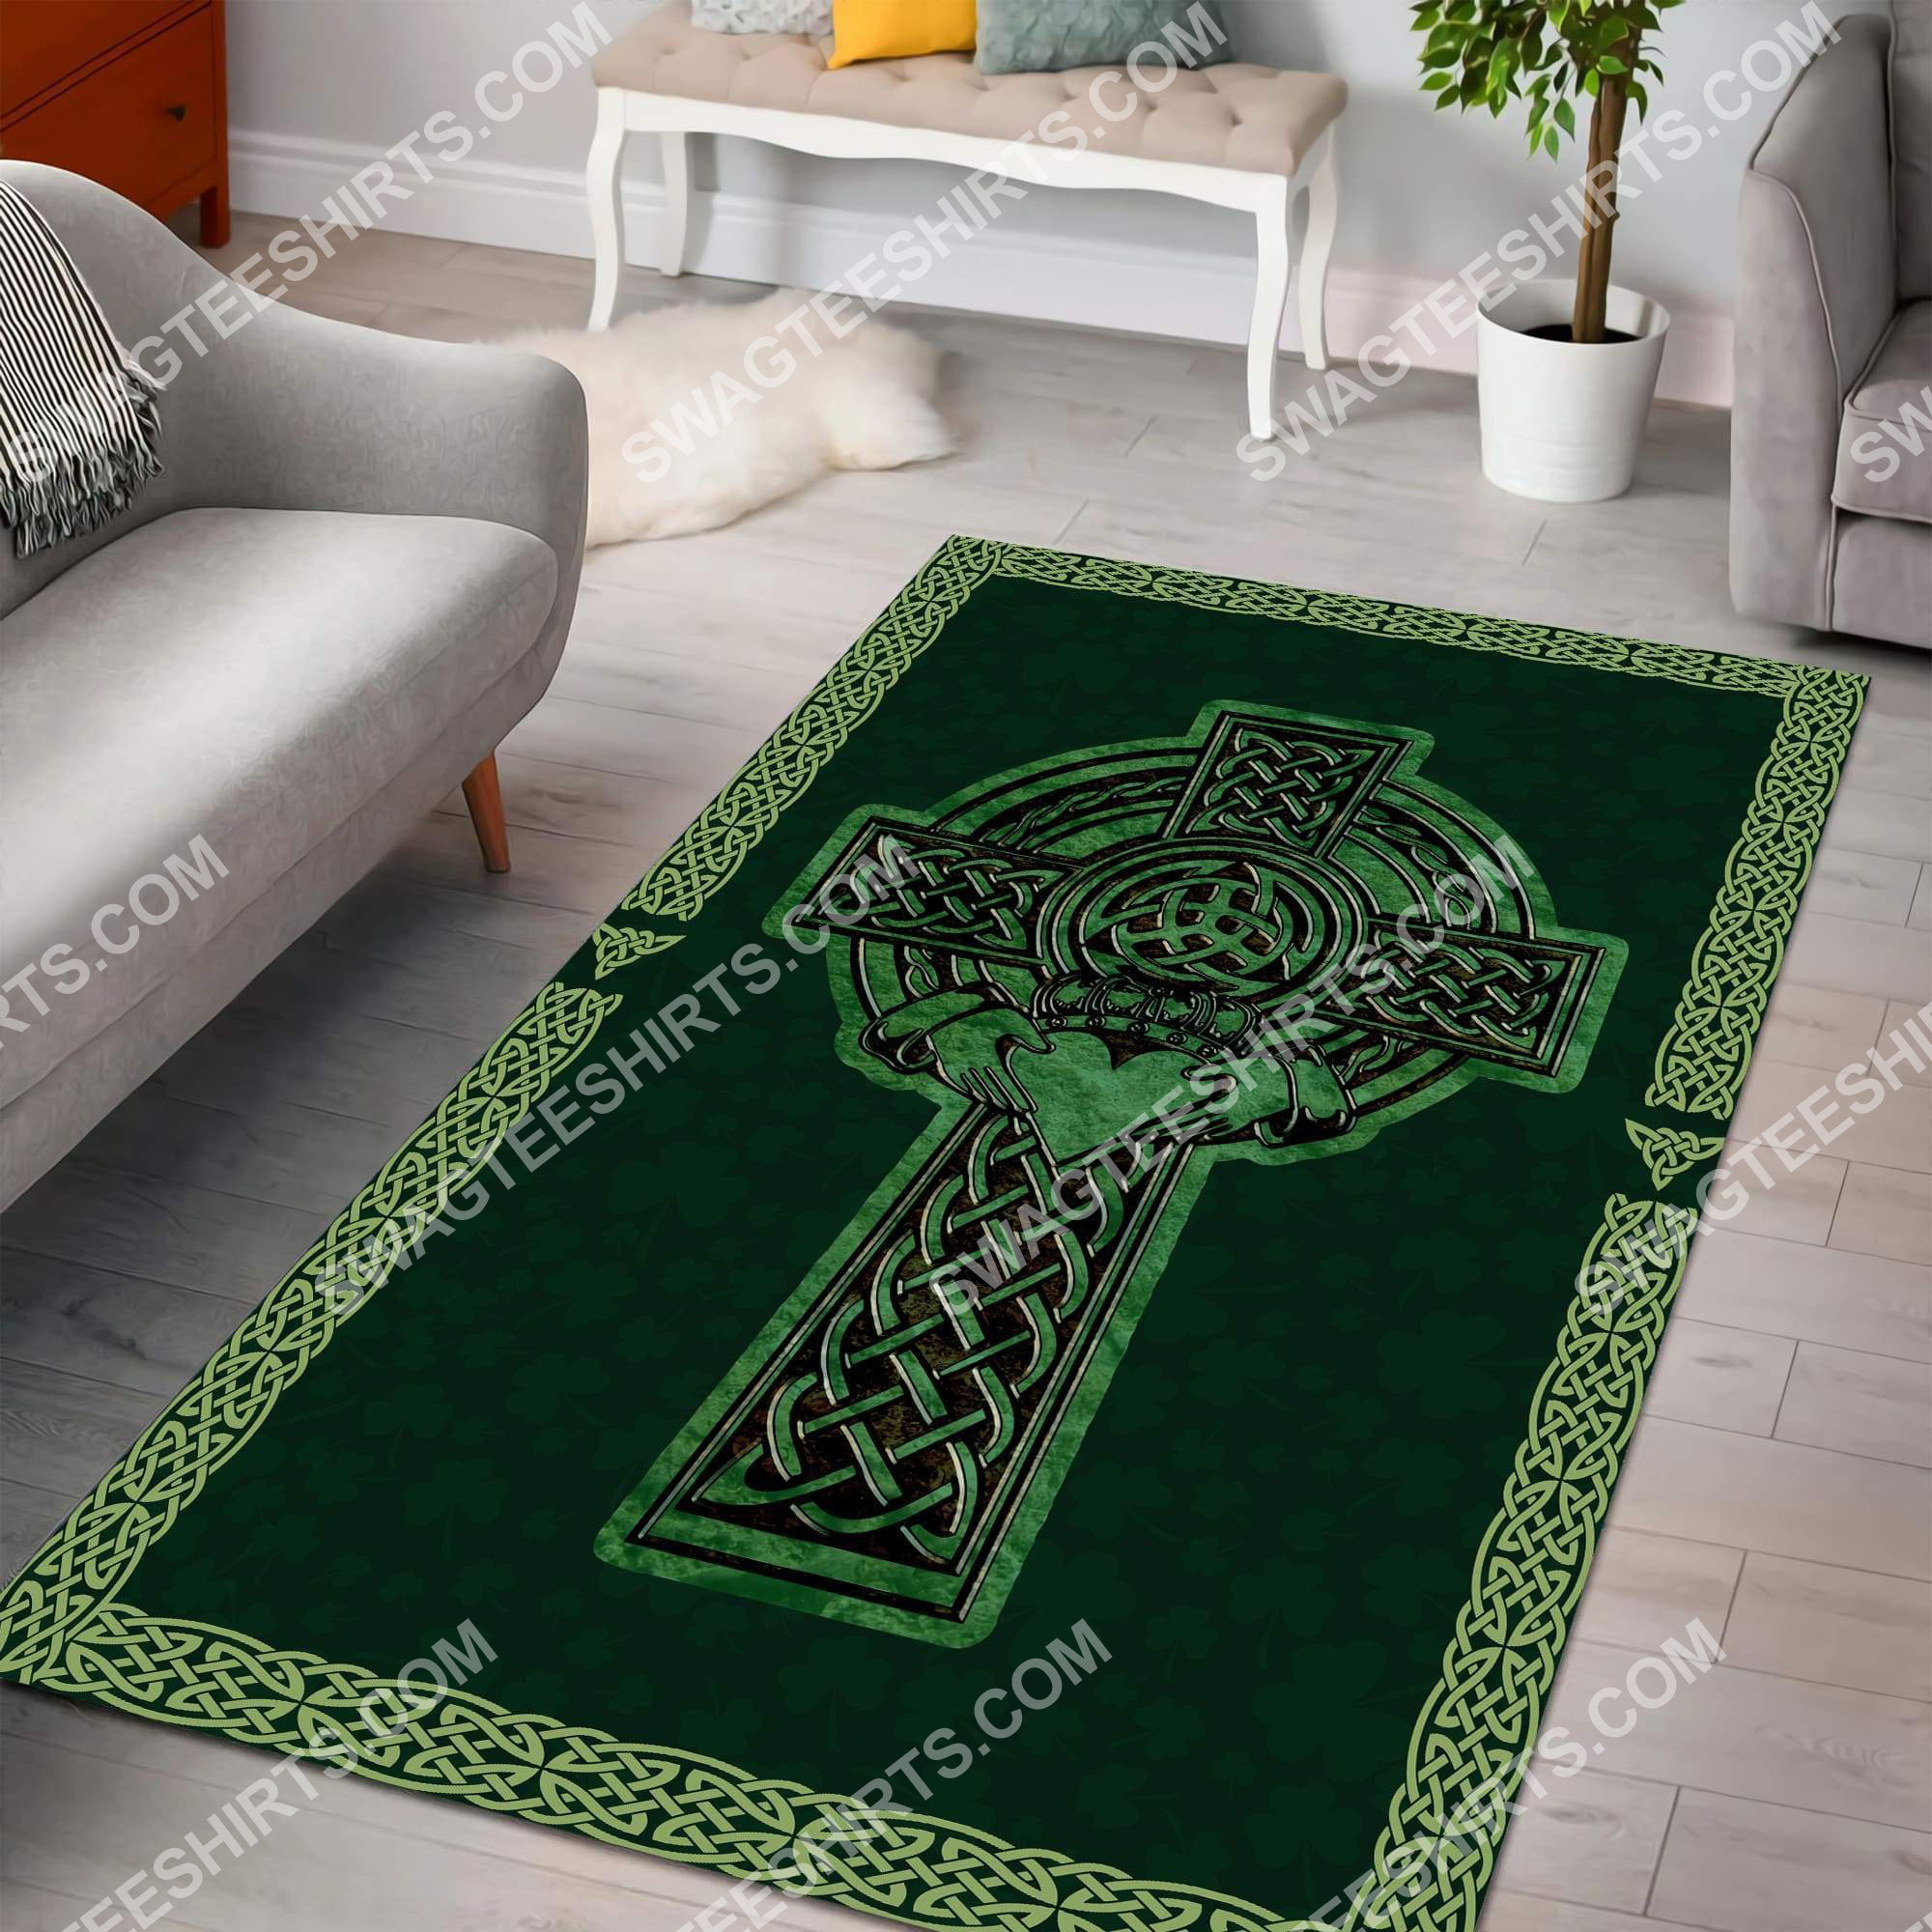 saint patrick's day cross all over printed rug 2(1)